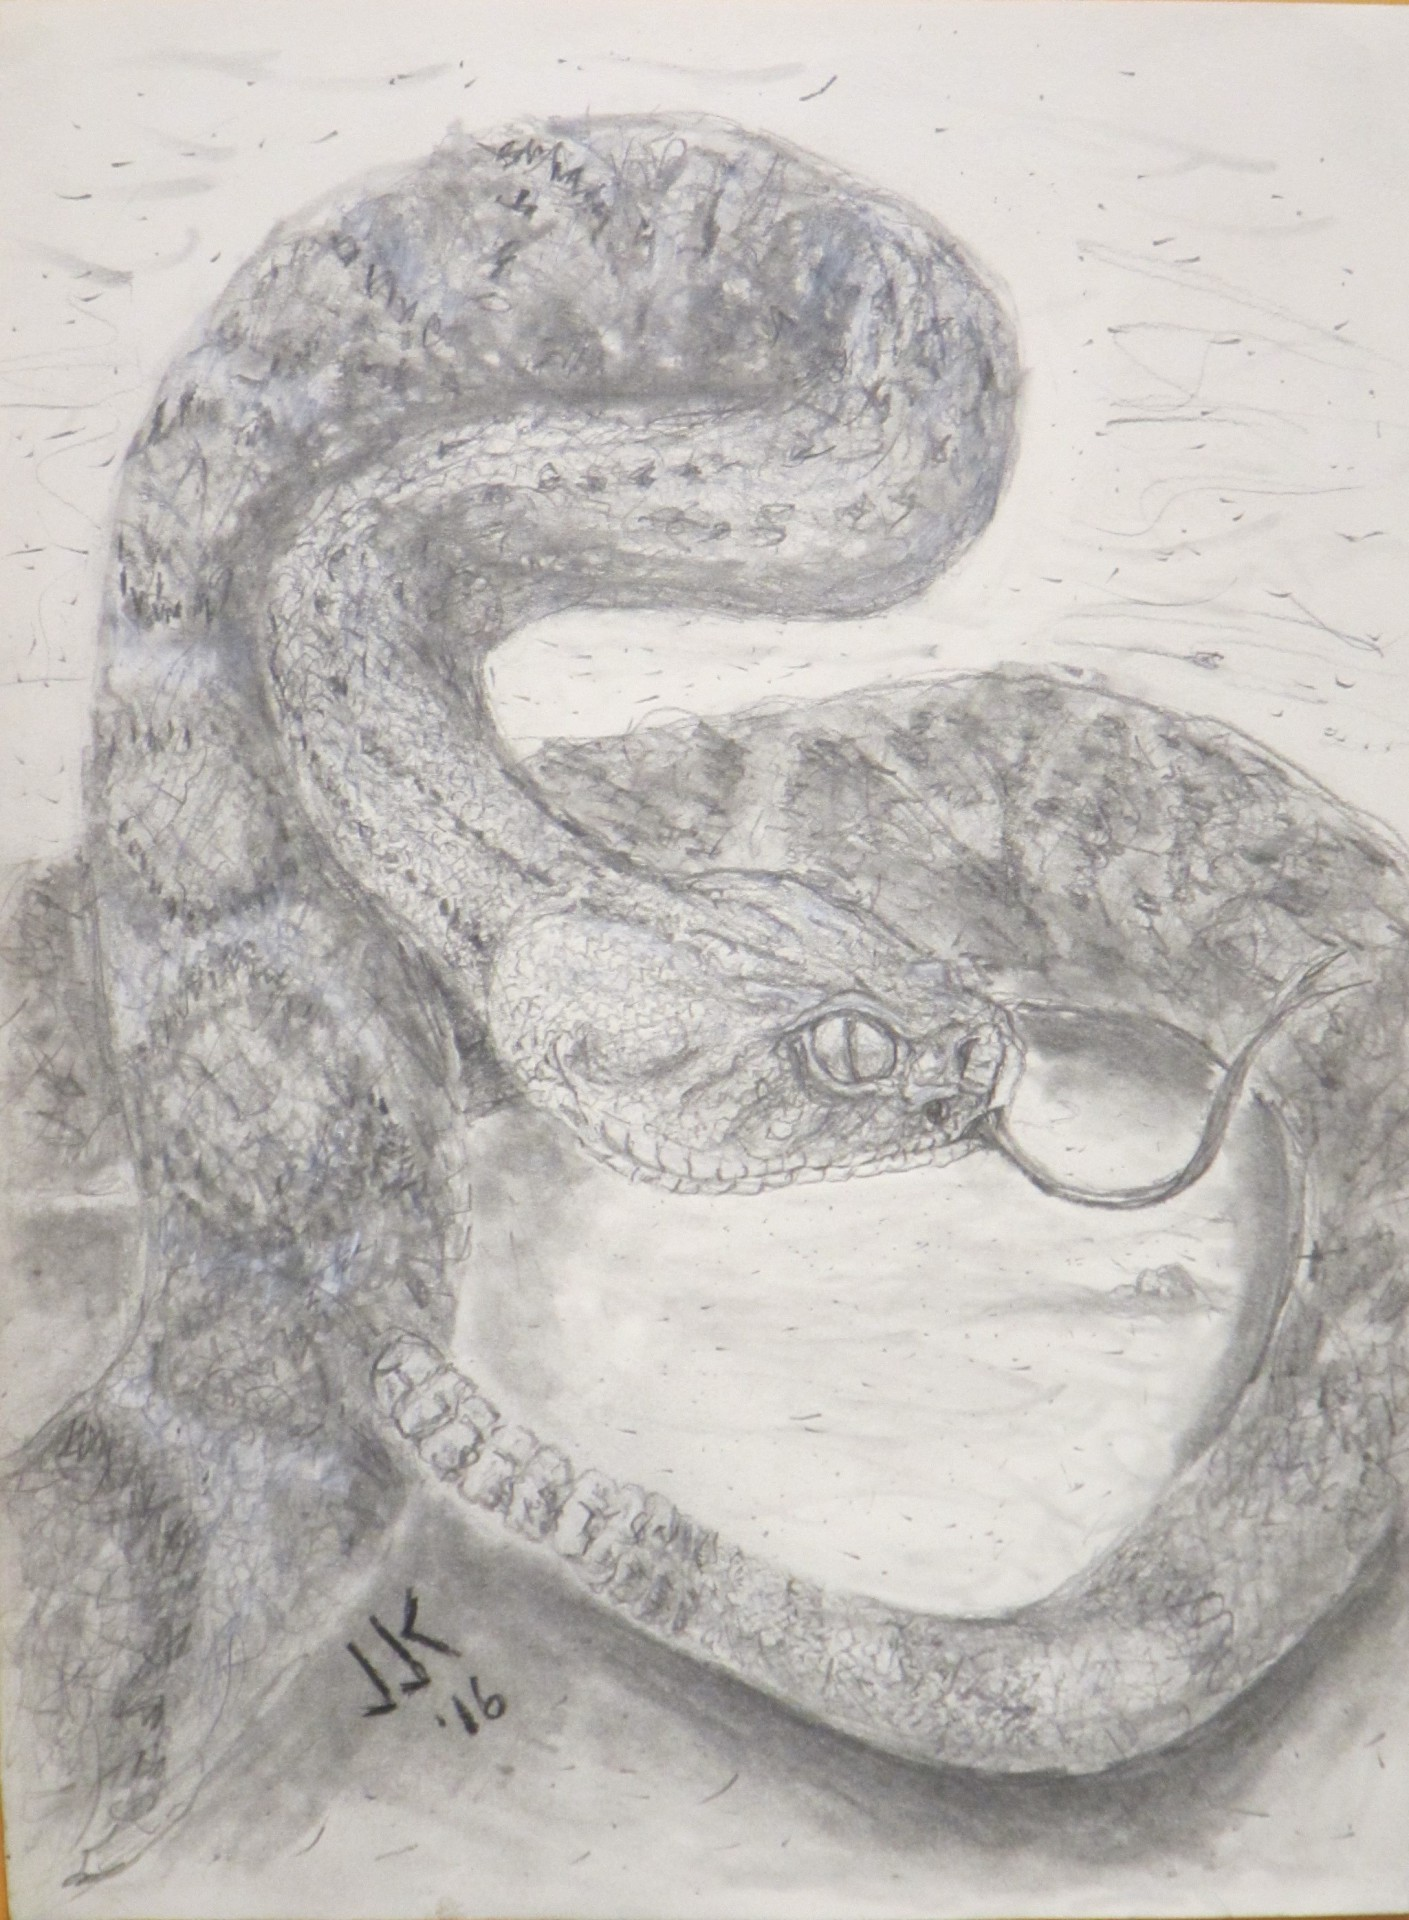 Pencil drawing of a western diamondback rattlesnake ready to strike.